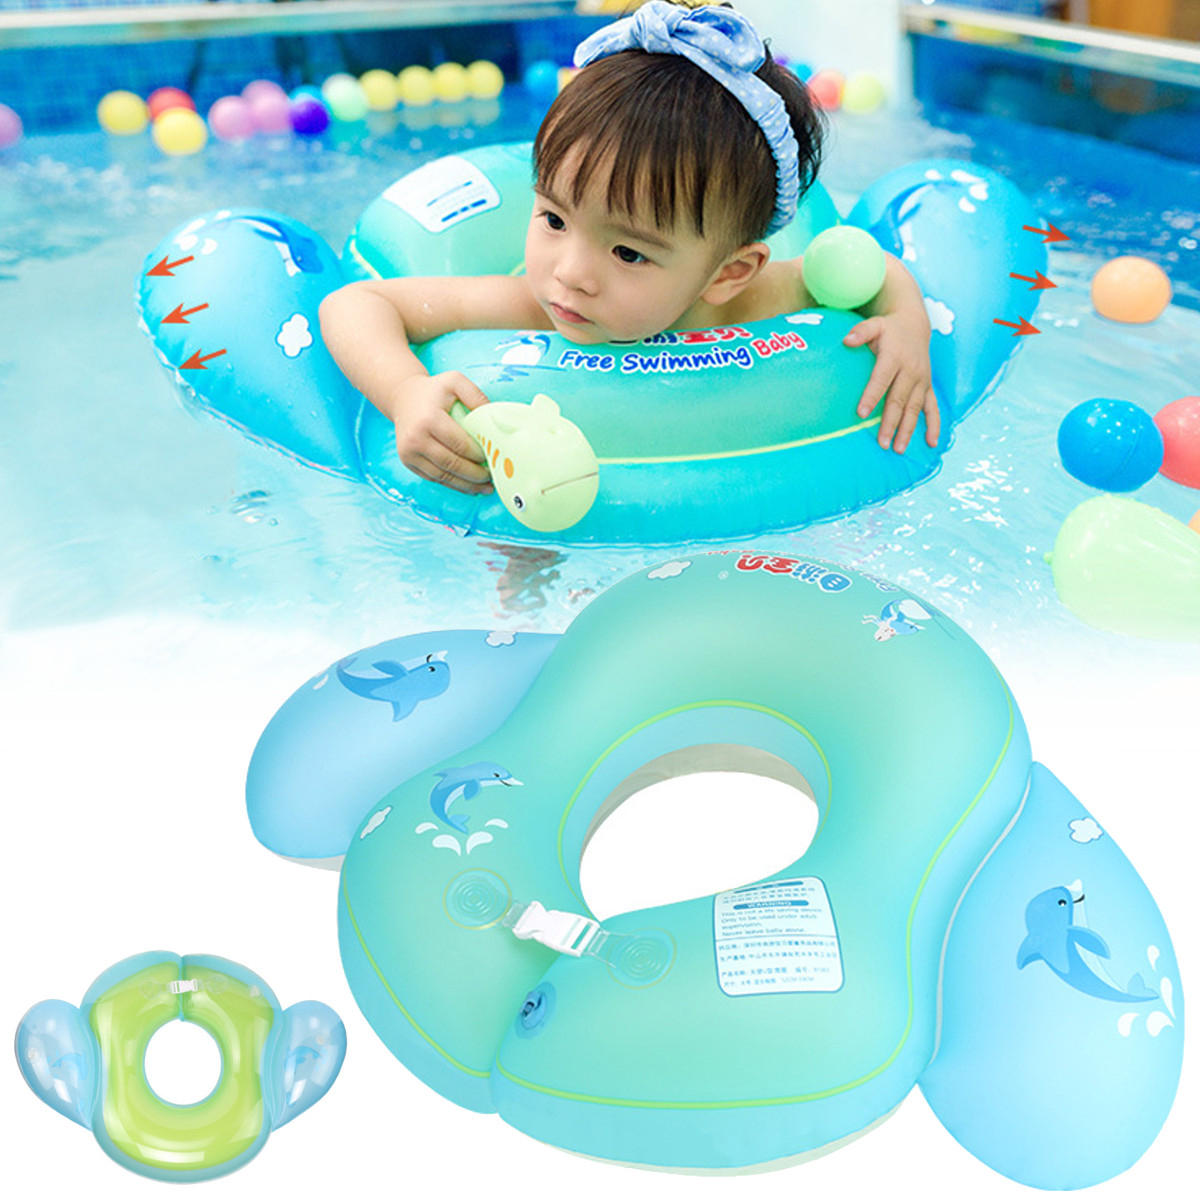 Outdoor Baby Float Swimming Ring Kids Inflatable Infants Swim Trainer Pool Water Fun Toy